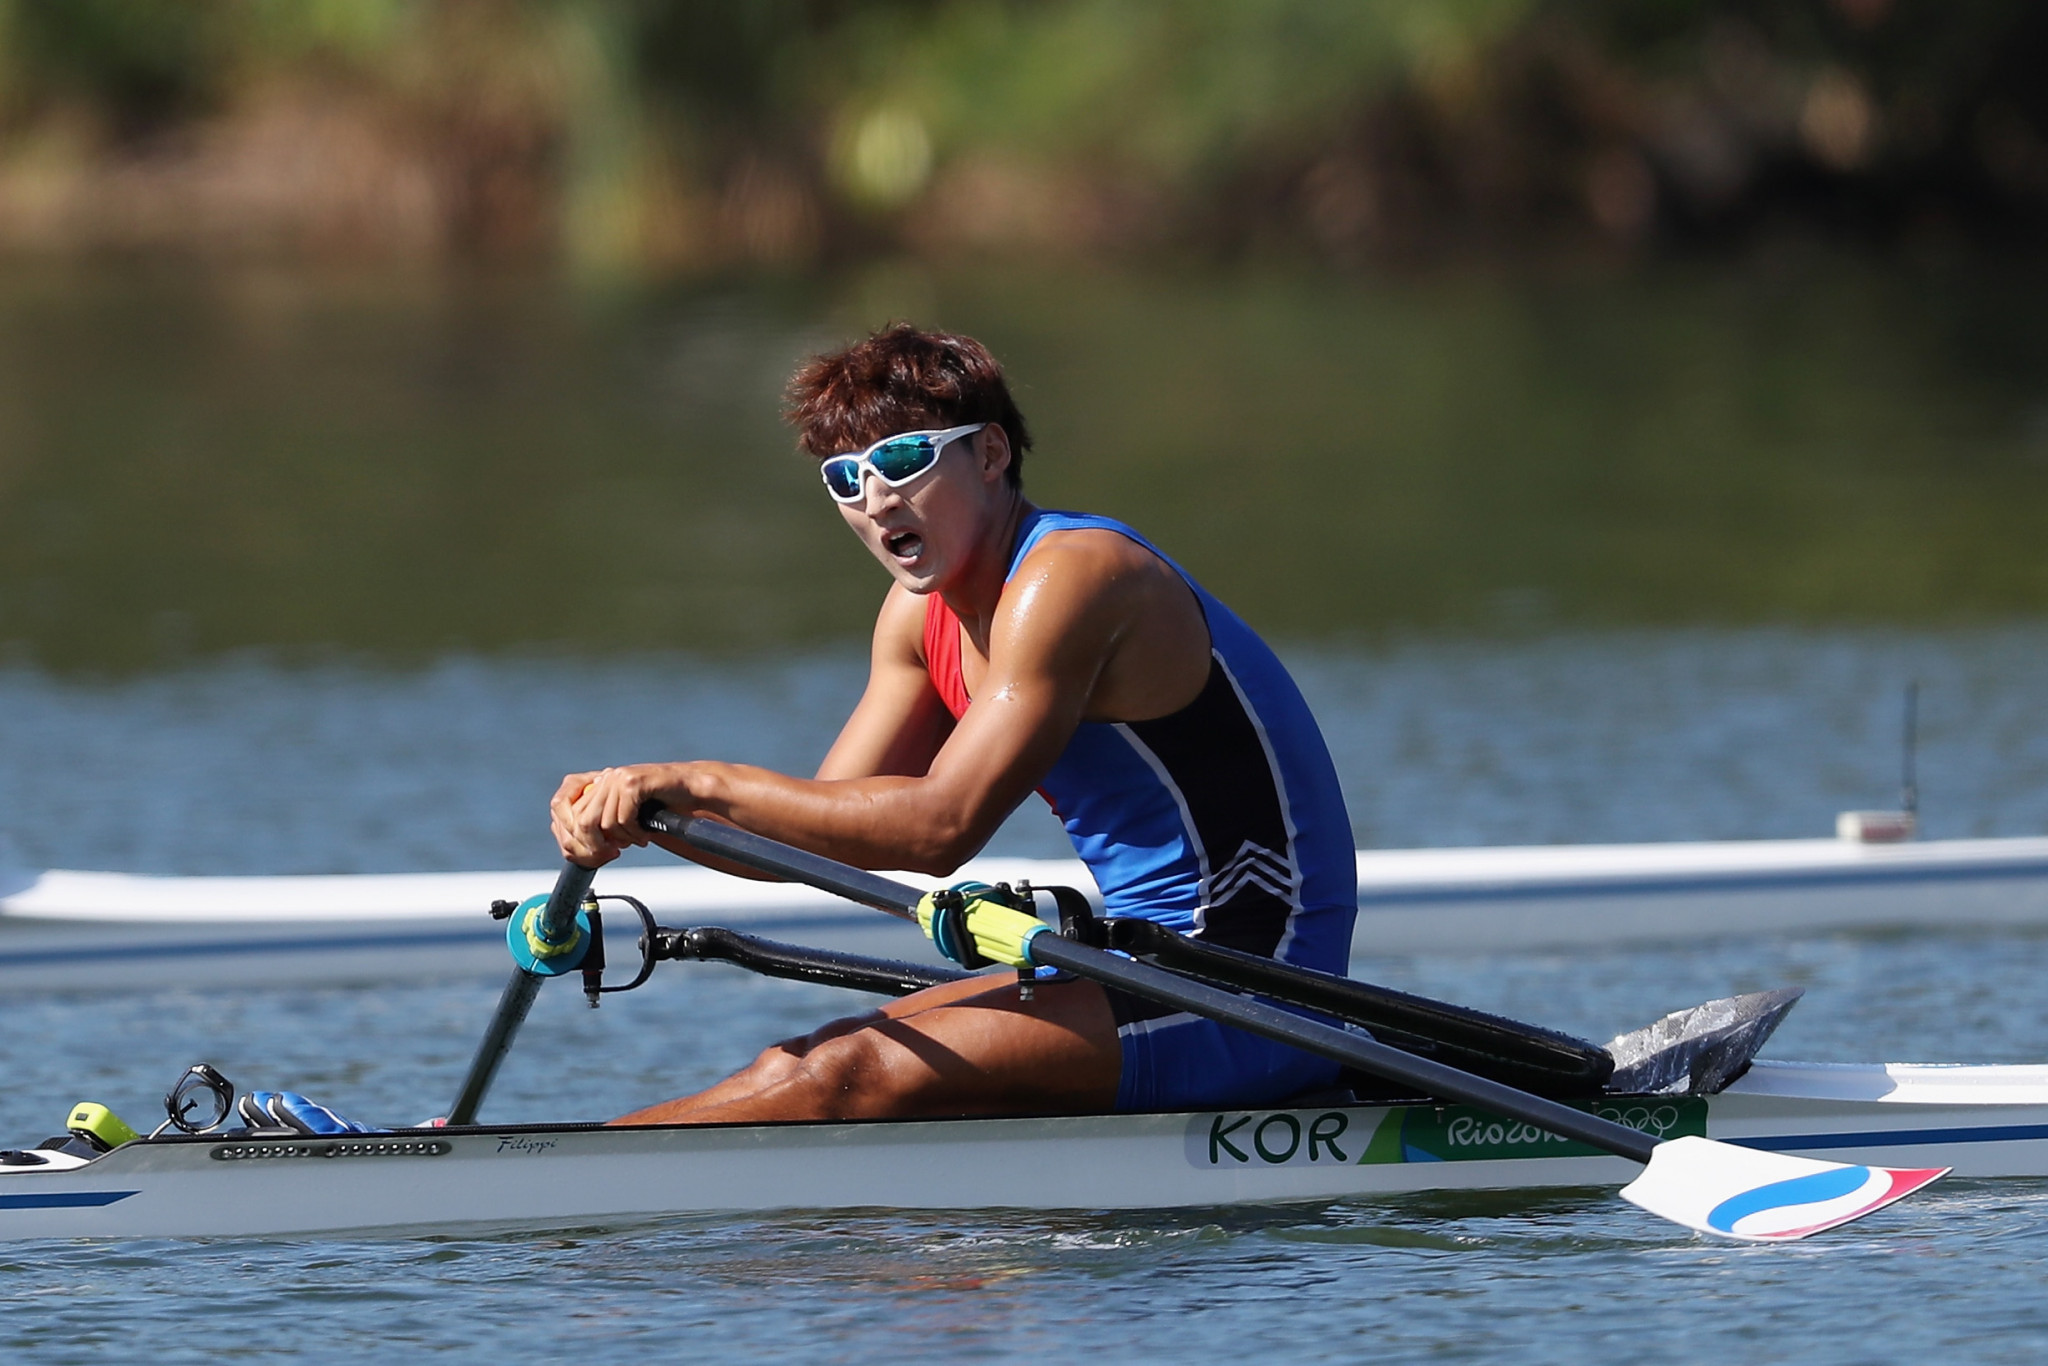 Kim Dong-yong was one of two South Korean rowers at Rio 2016 ©Getty Images